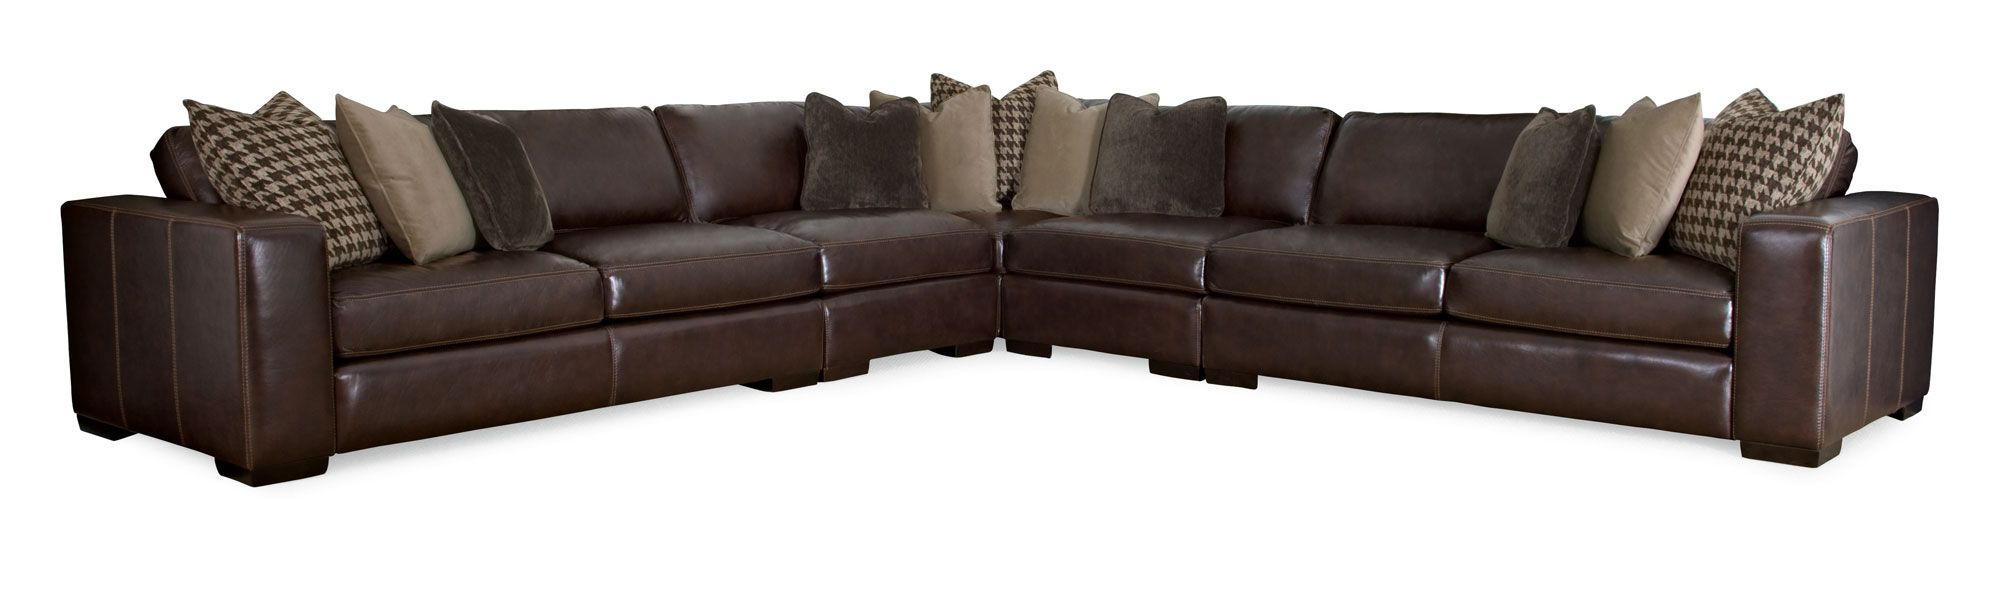 Bernhardt Sectional Leather Sofa Bernhardt Grandview 100